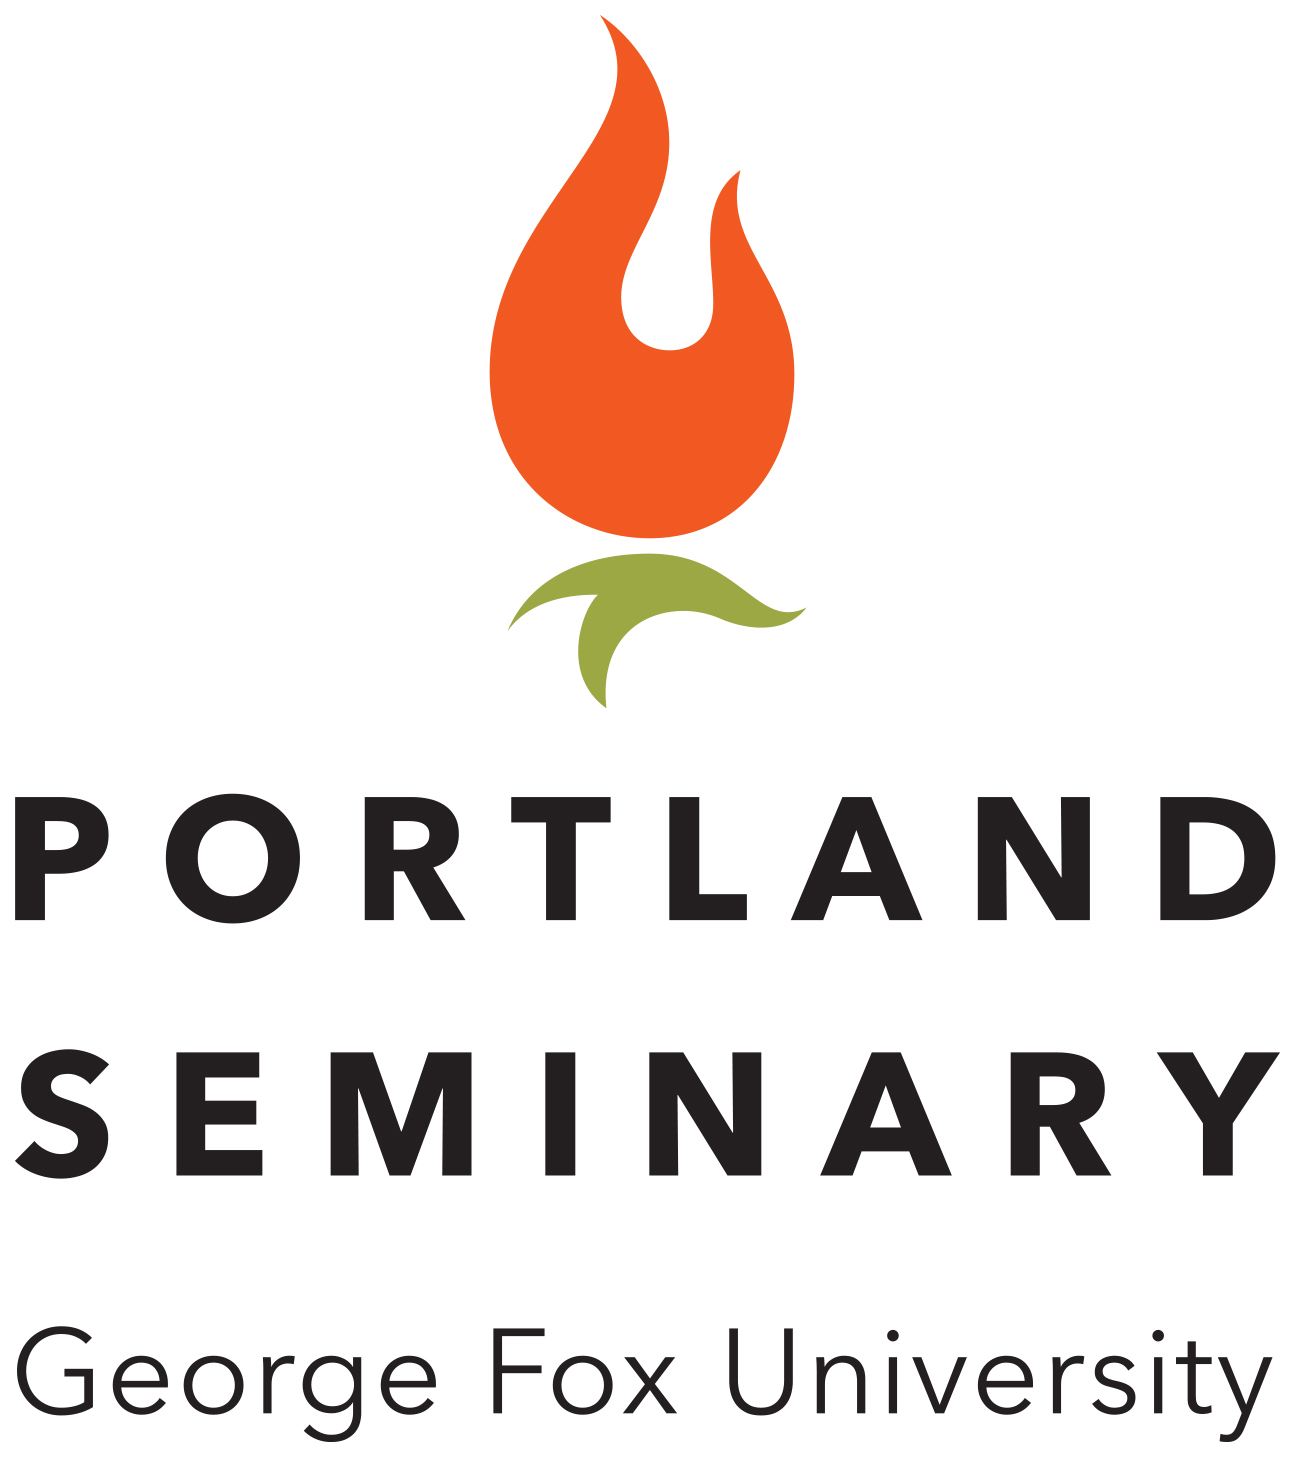 PDX_seminary_GF_stacked.jpg